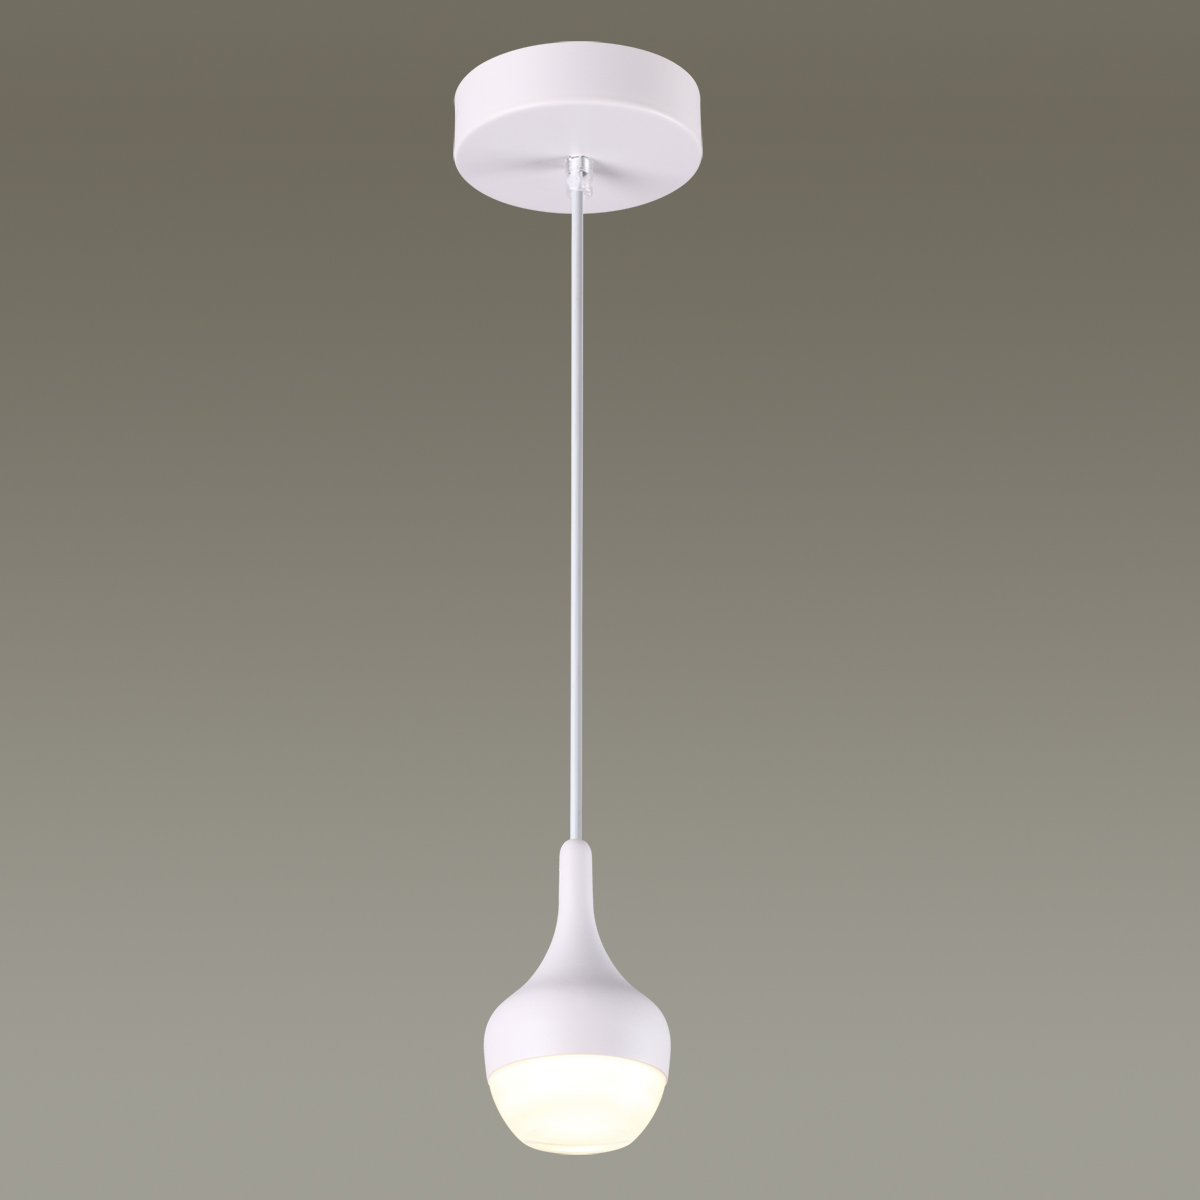 Подвес ODEON LIGHT арт. 3823/8L фото в интернет-магазине Сибсвет.ру